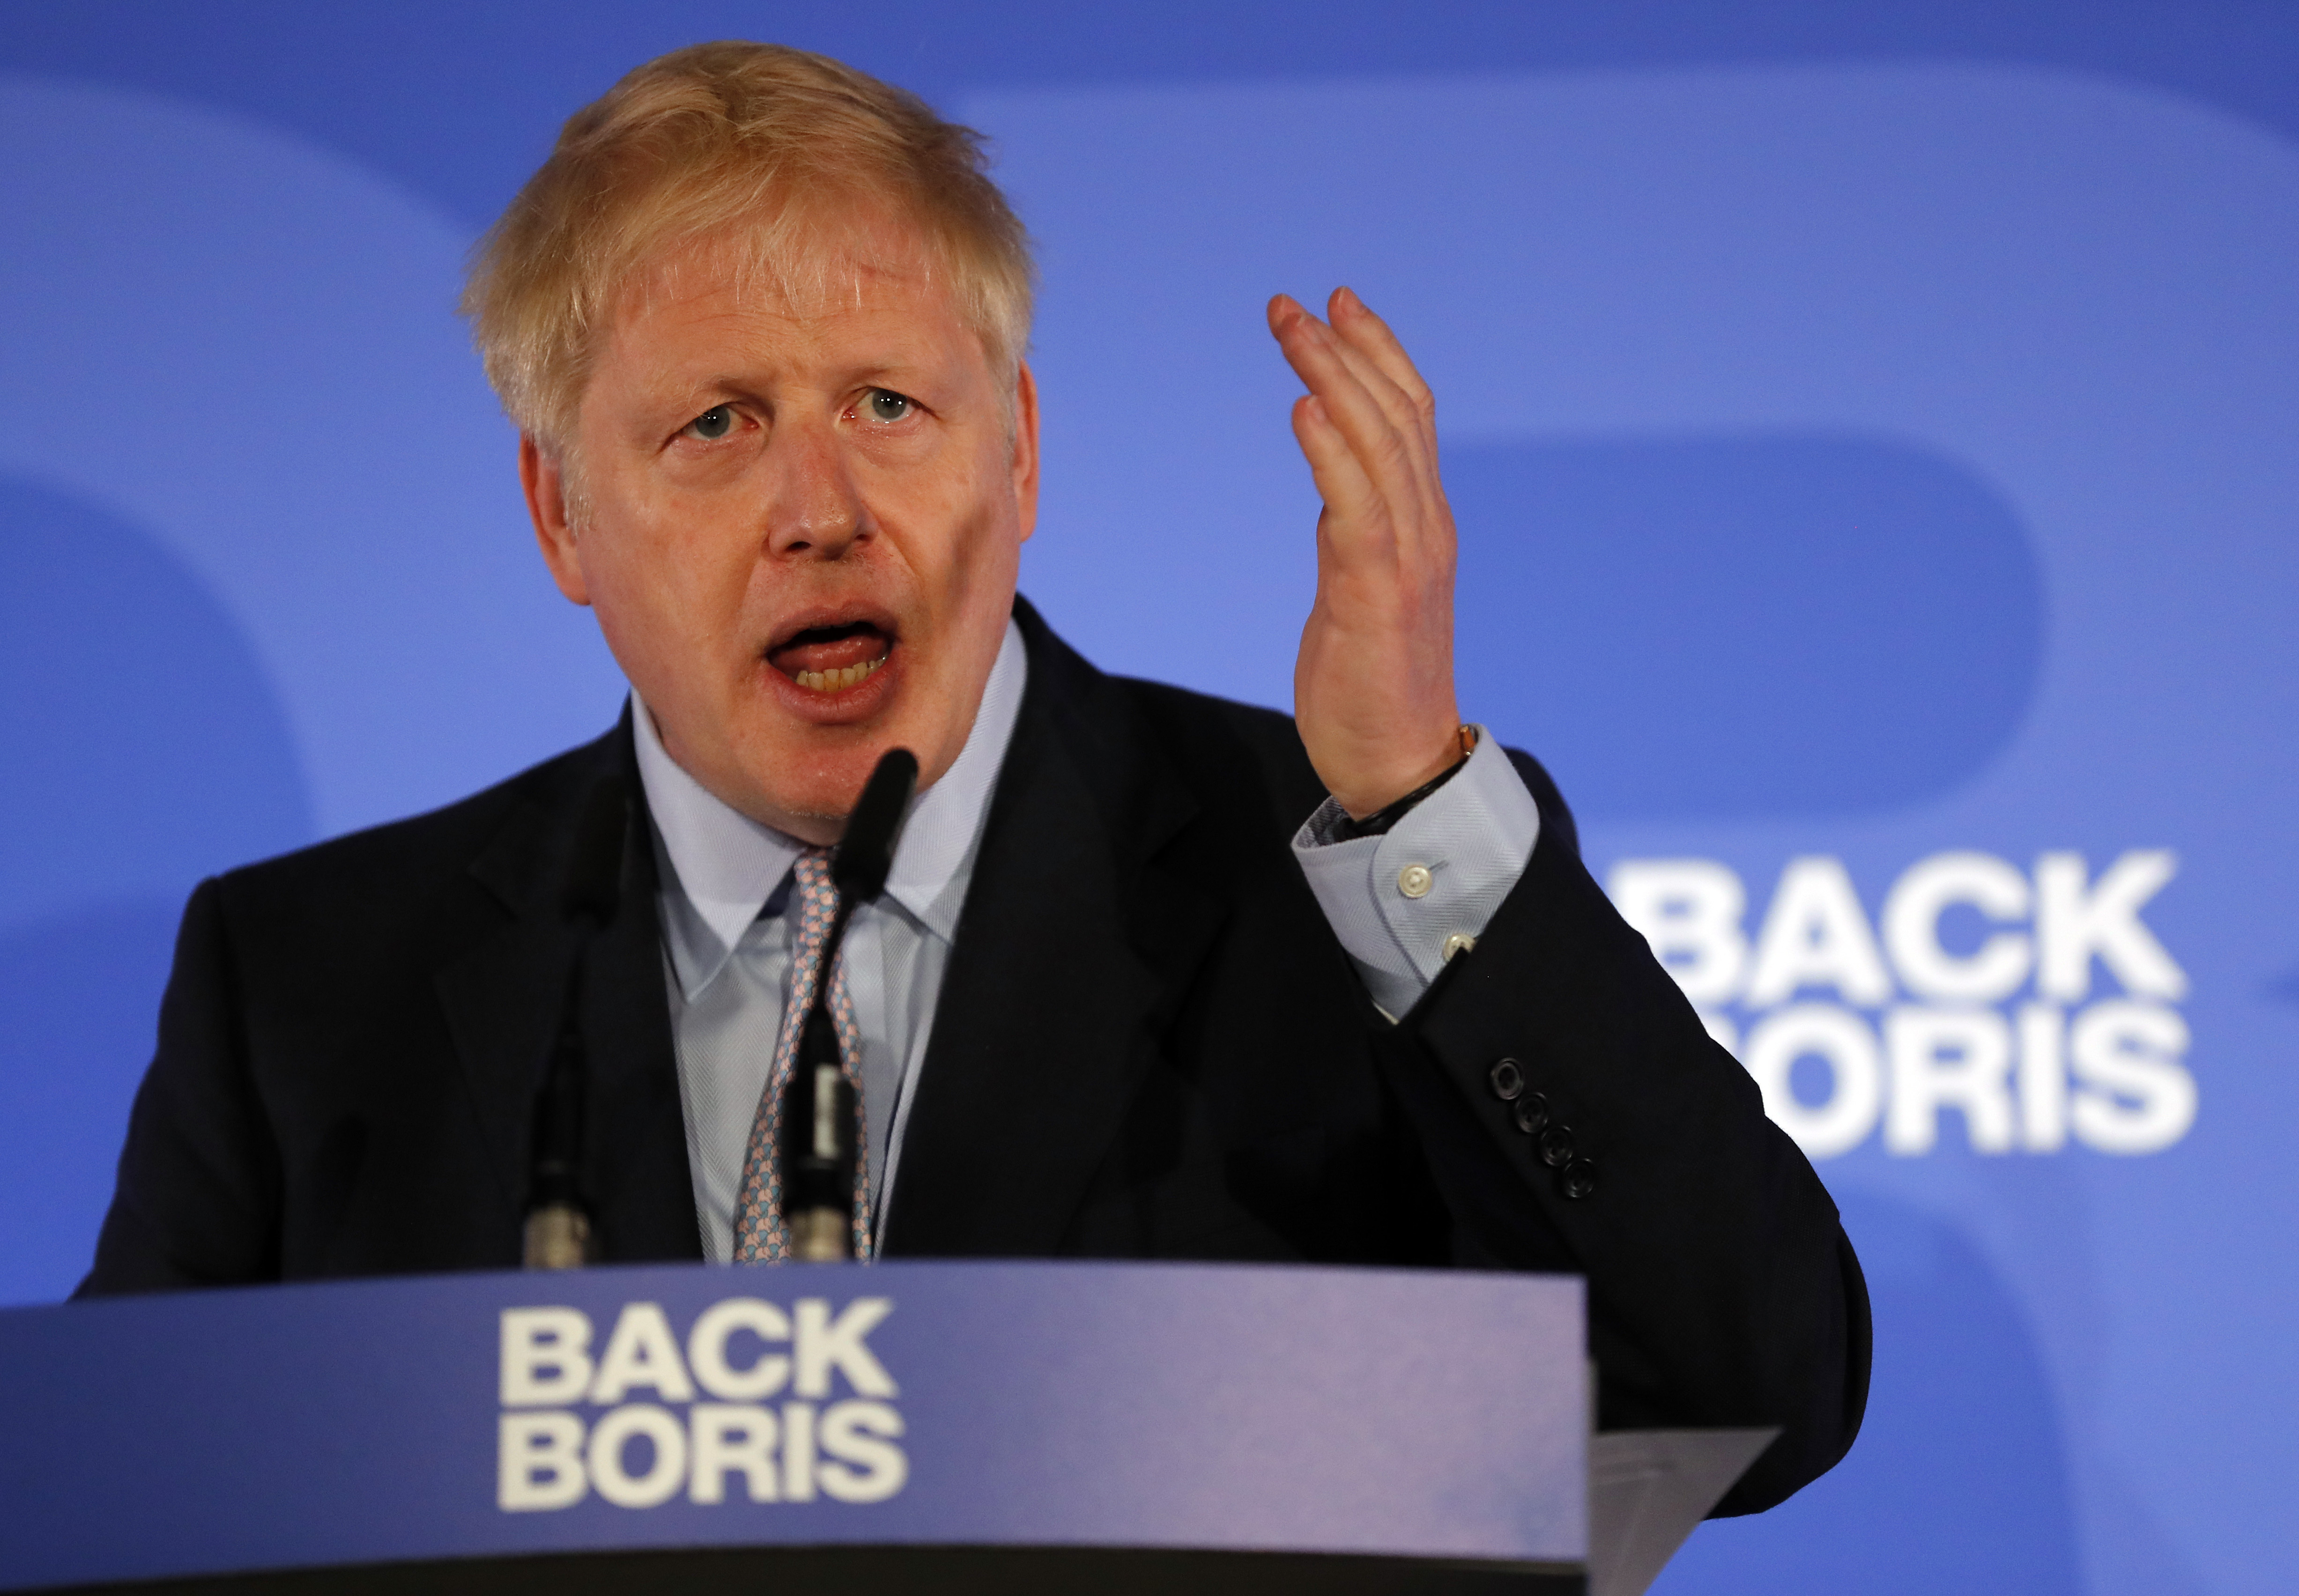 Britain's Conservative Party lawmaker Boris Johnson gestures as he speaks during the official launch of his leadership campaign, in London, Wednesday June 12, 2019. Boris Johnson solidified his front-runner status in the race to become Britain's next prime minister on Tuesday, gaining backing from leading pro-Brexit lawmakers.(AP Photo/Frank Augstein)